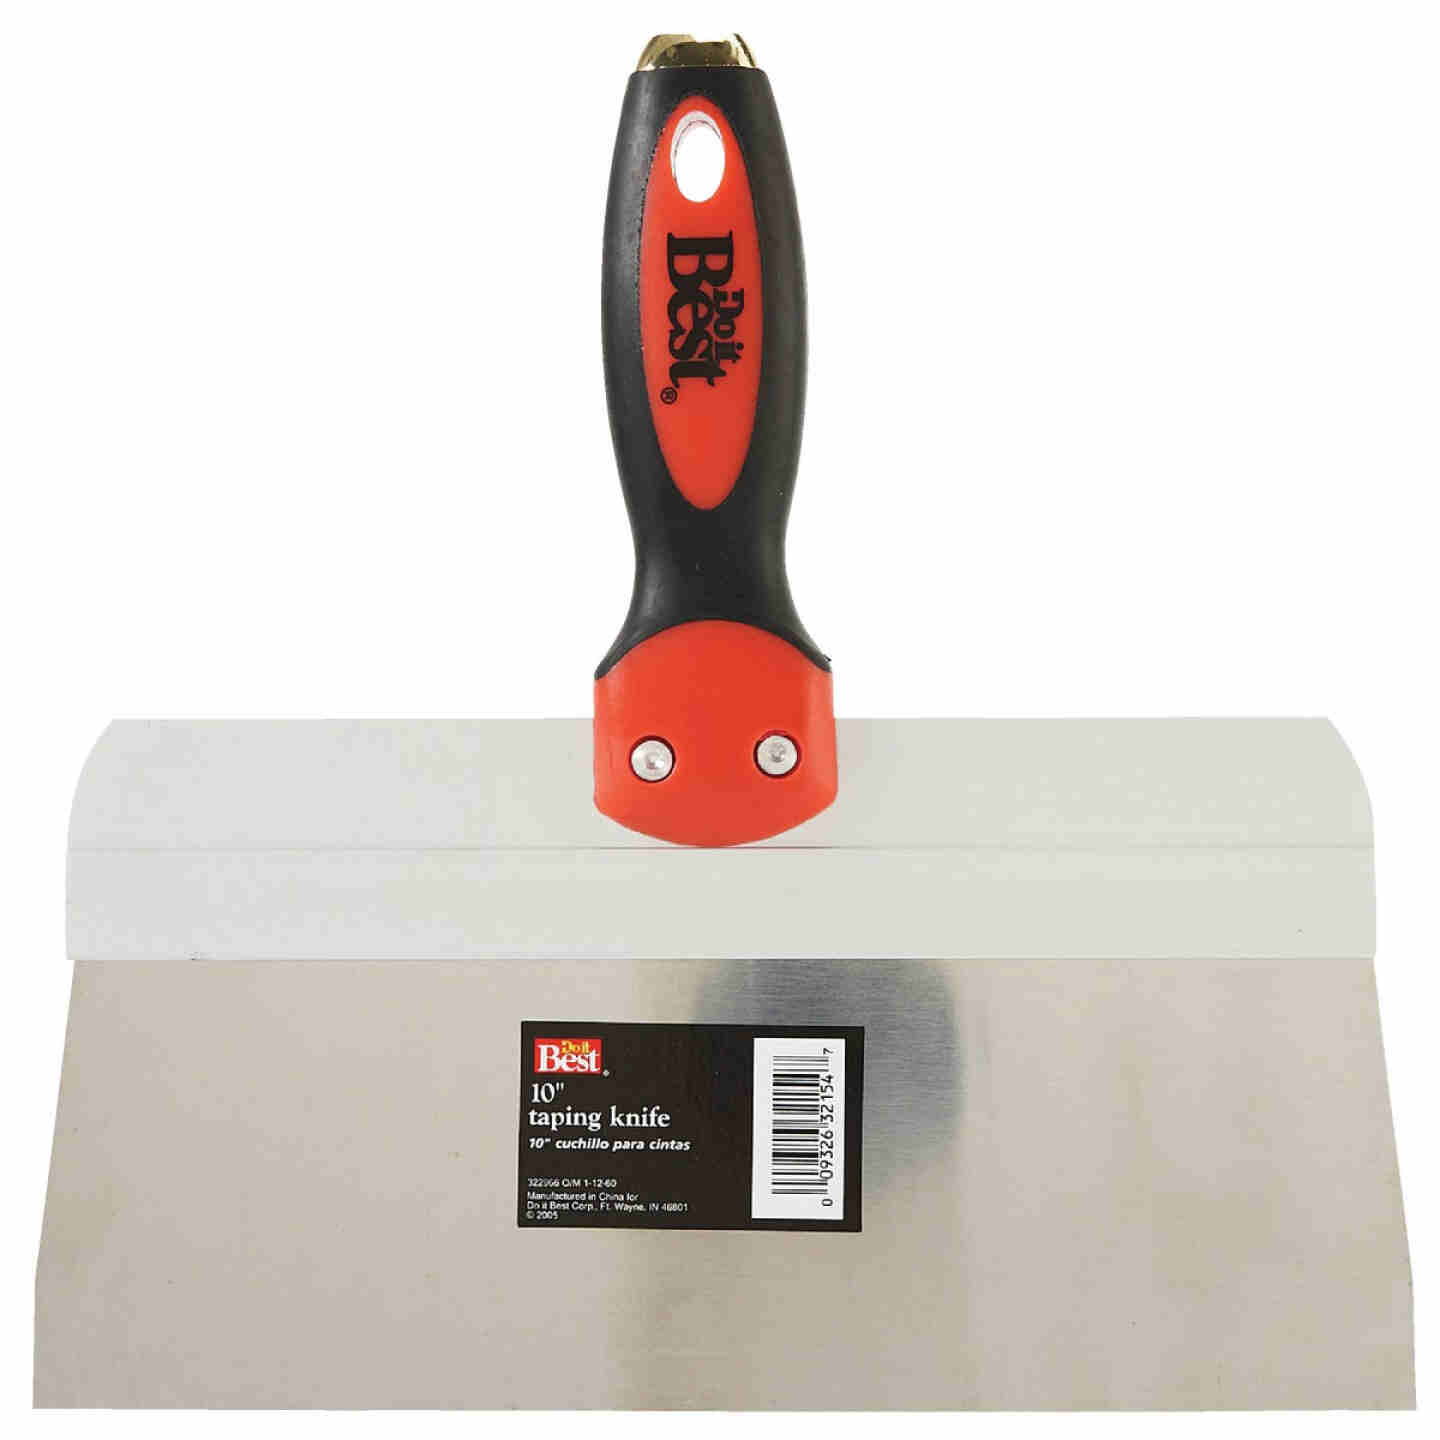 Do it Best 10 In. Stainless Steel Taping Knife Image 1